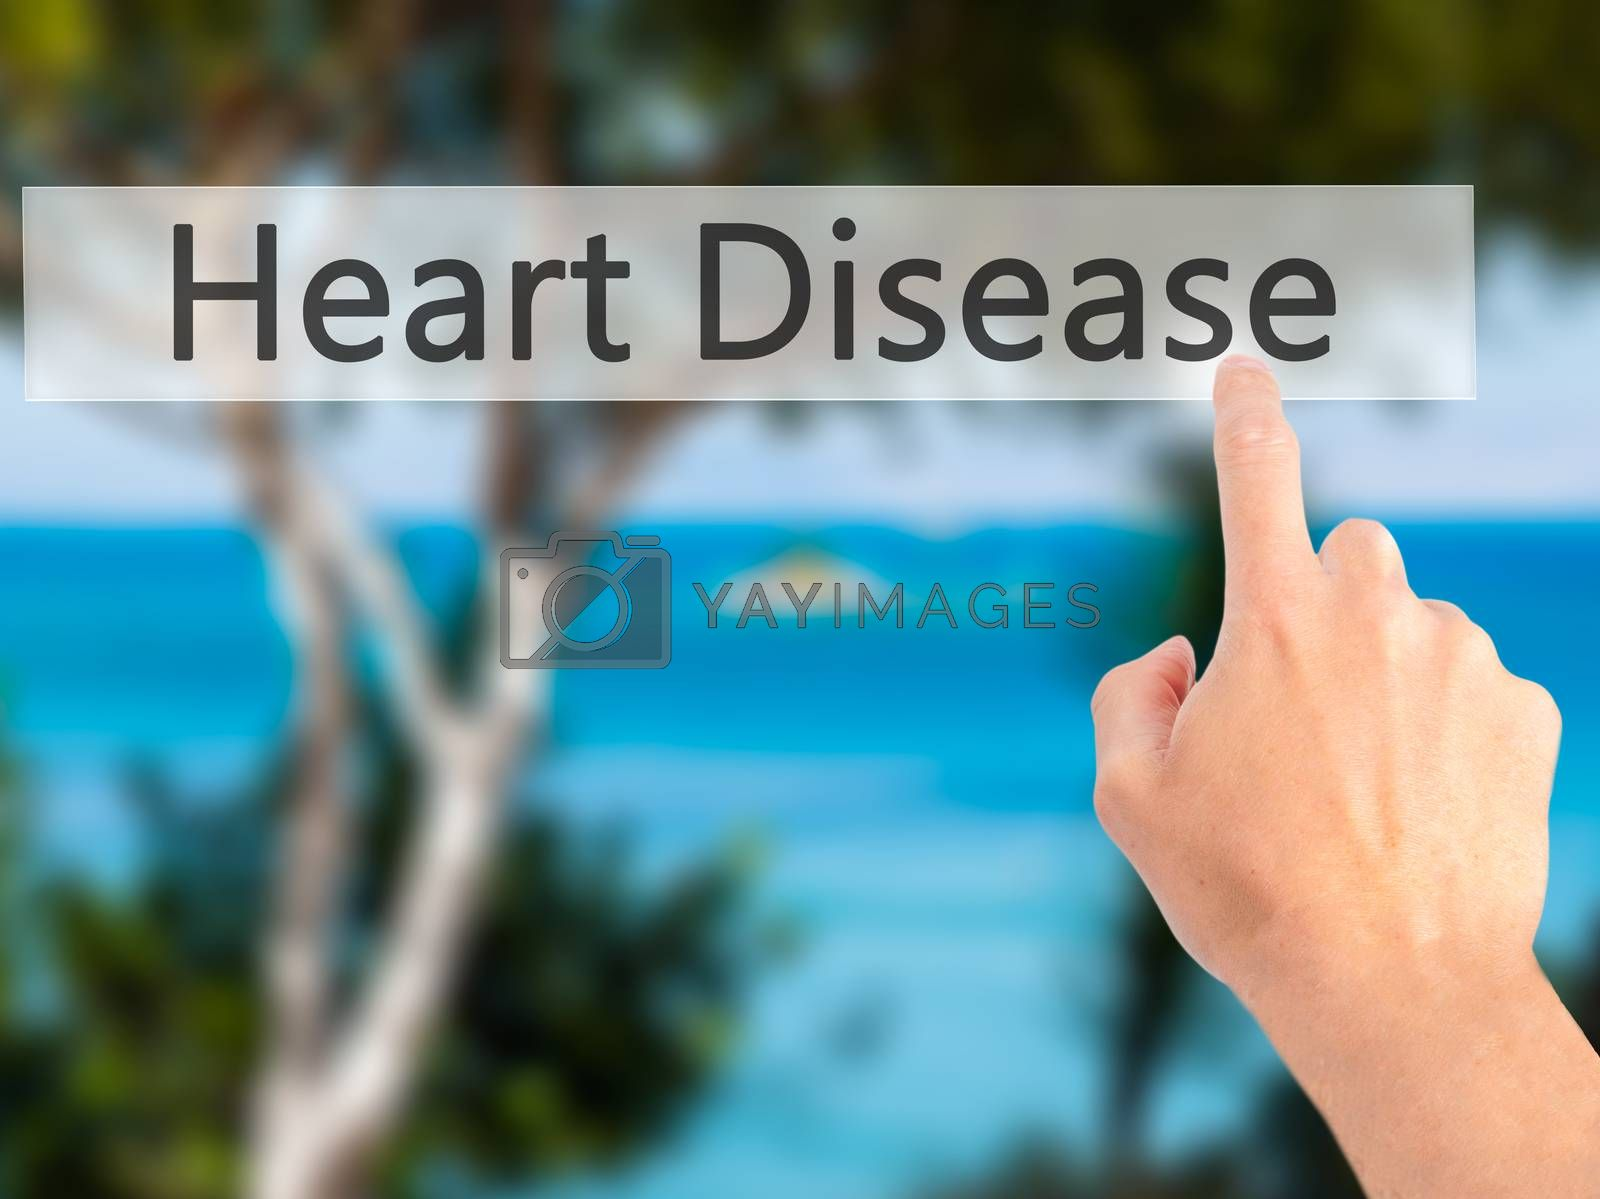 Heart Disease - Hand pressing a button on blurred background con by netsay.net